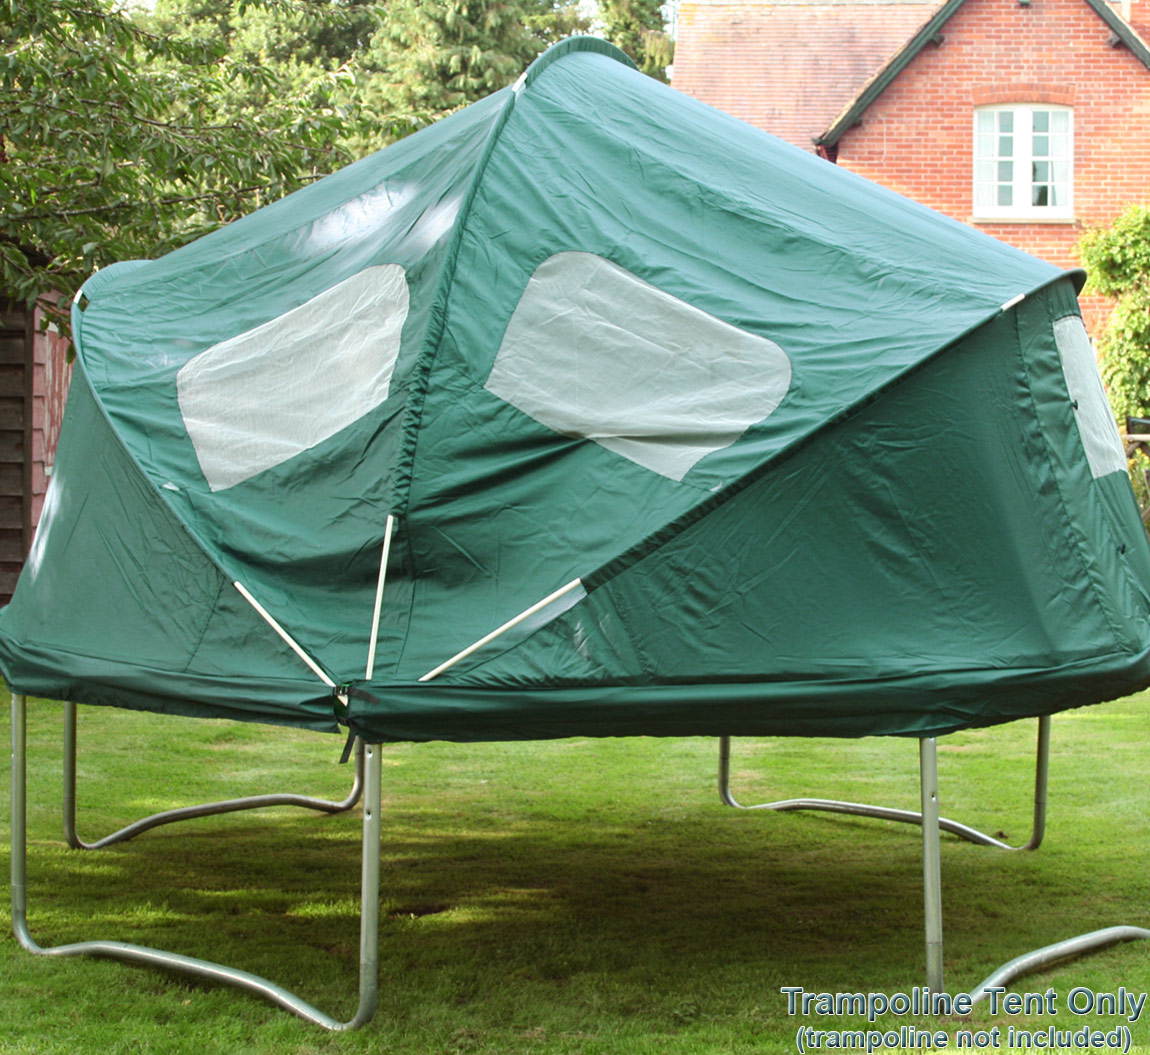 14ft Trampoline Tent